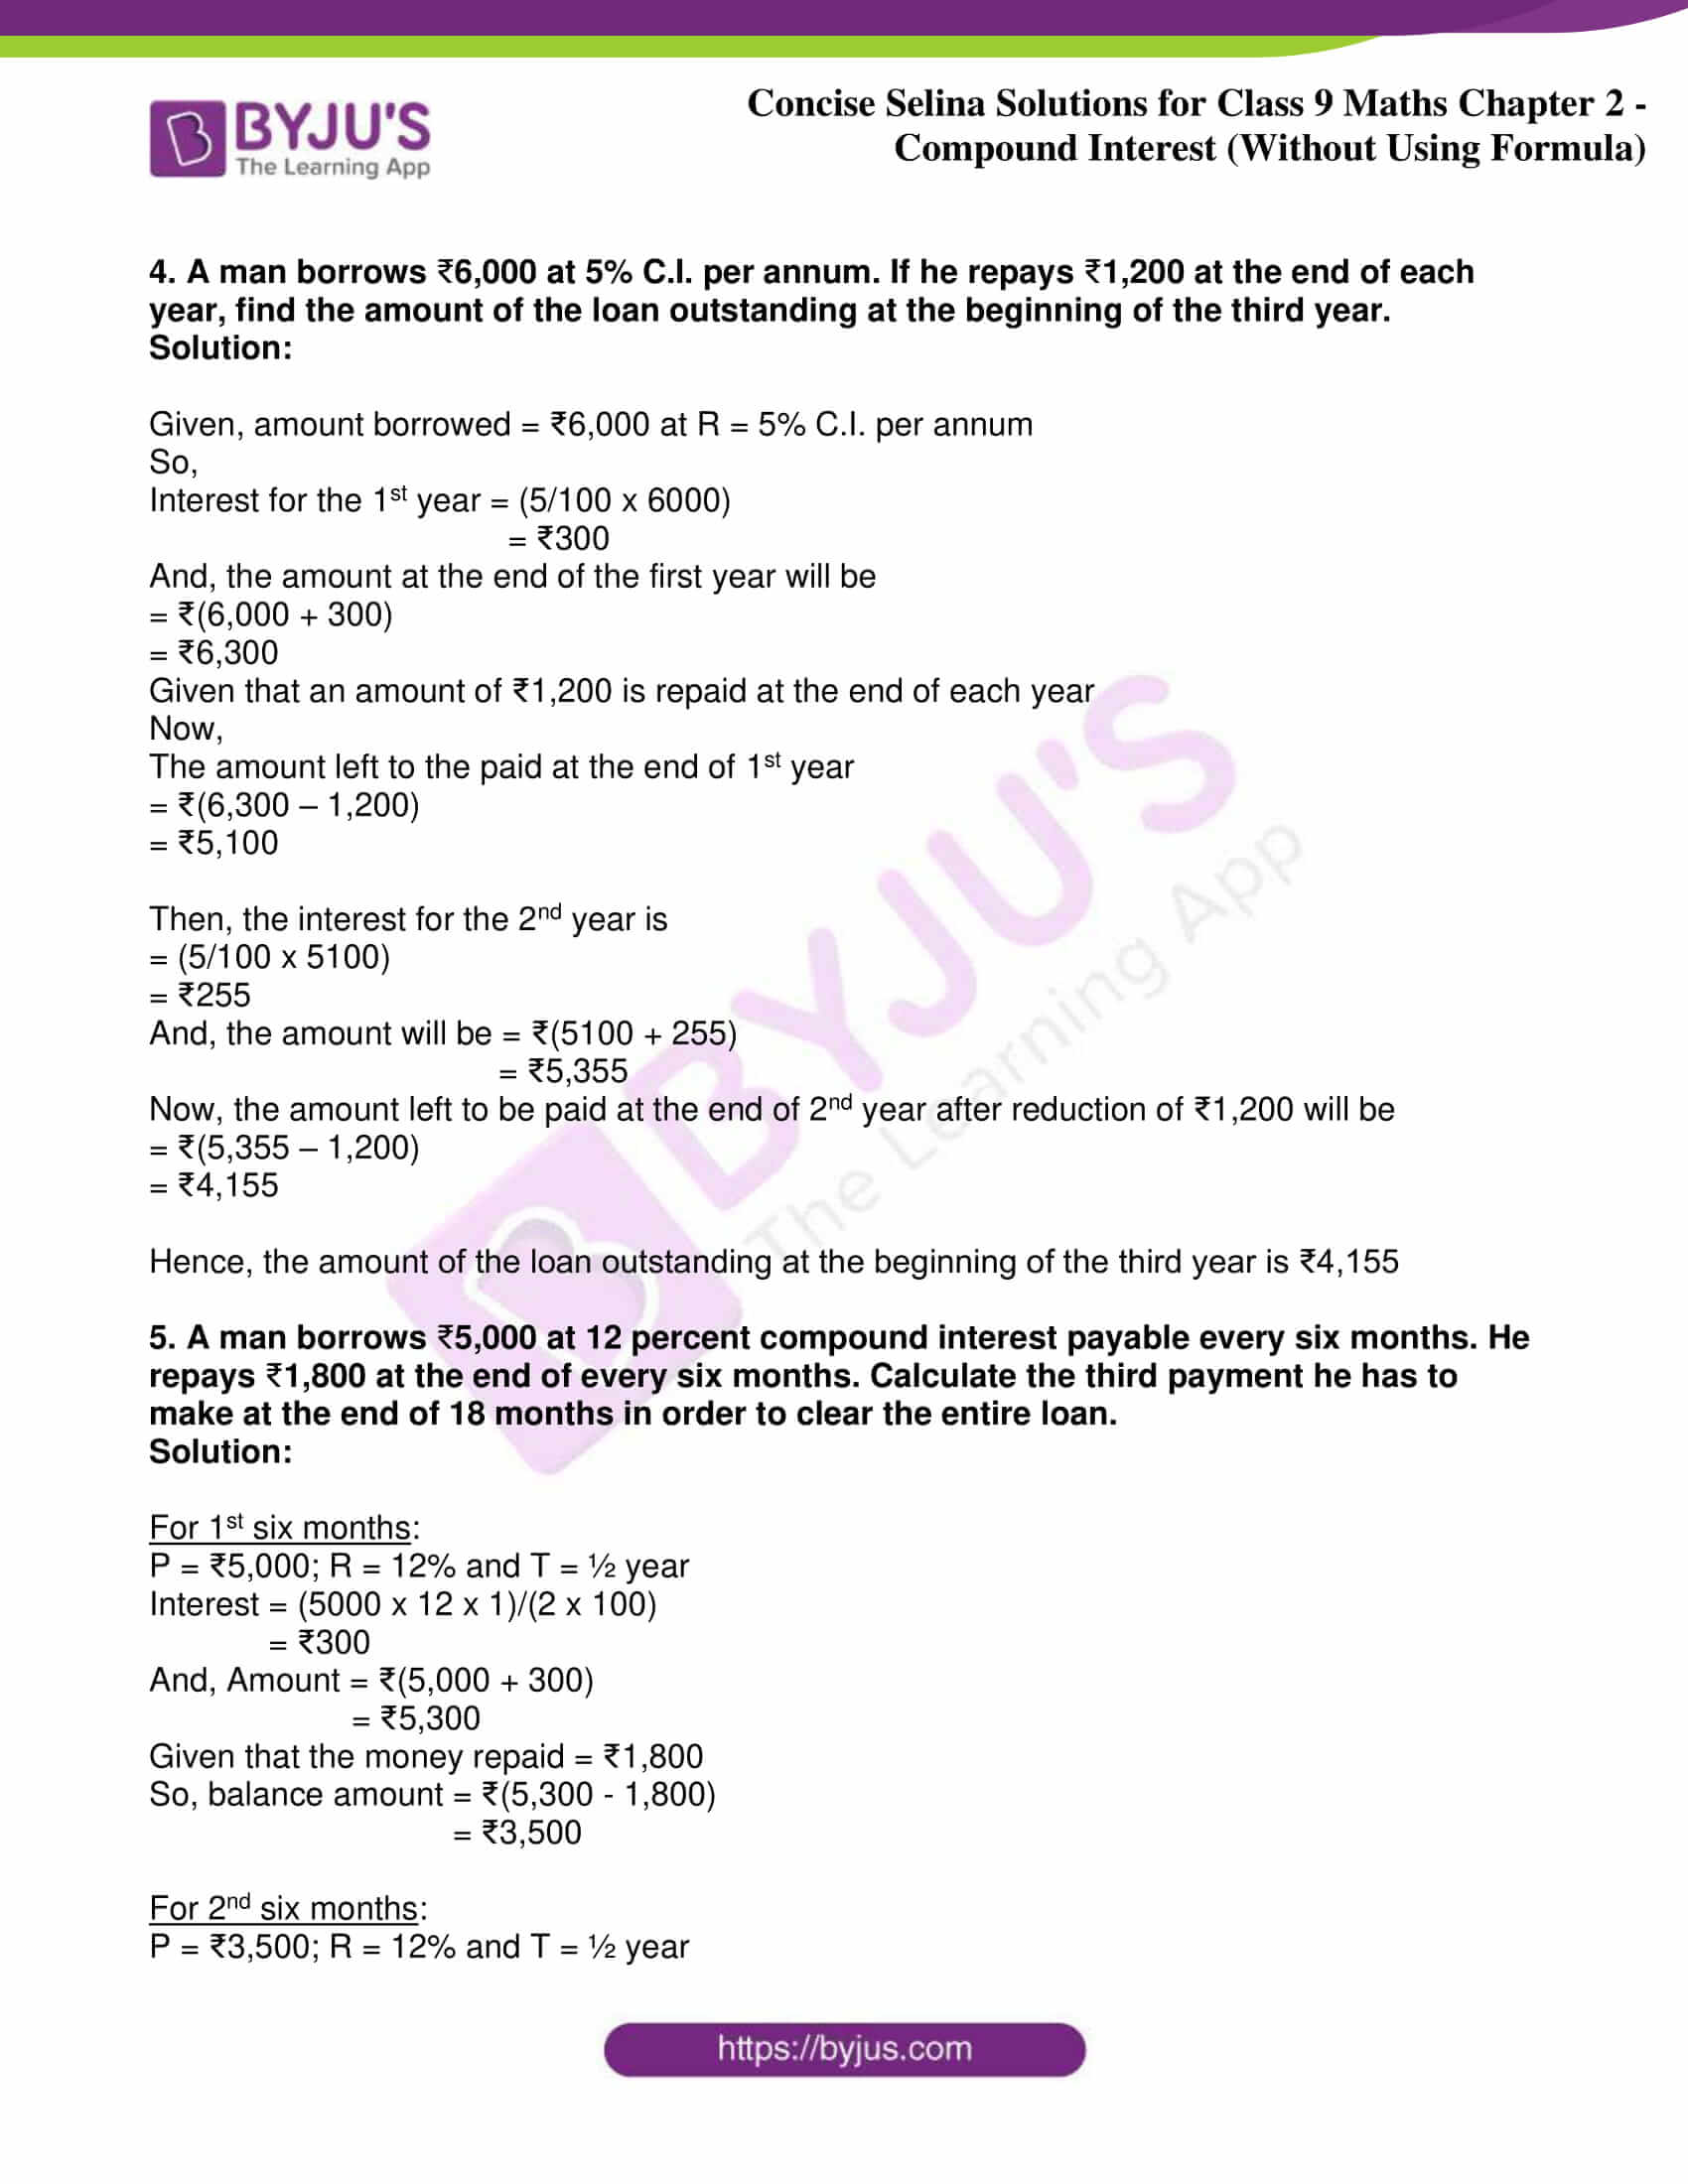 icse class 9 maths may10 selina solutions chapter 2 compound interest without using formula 10